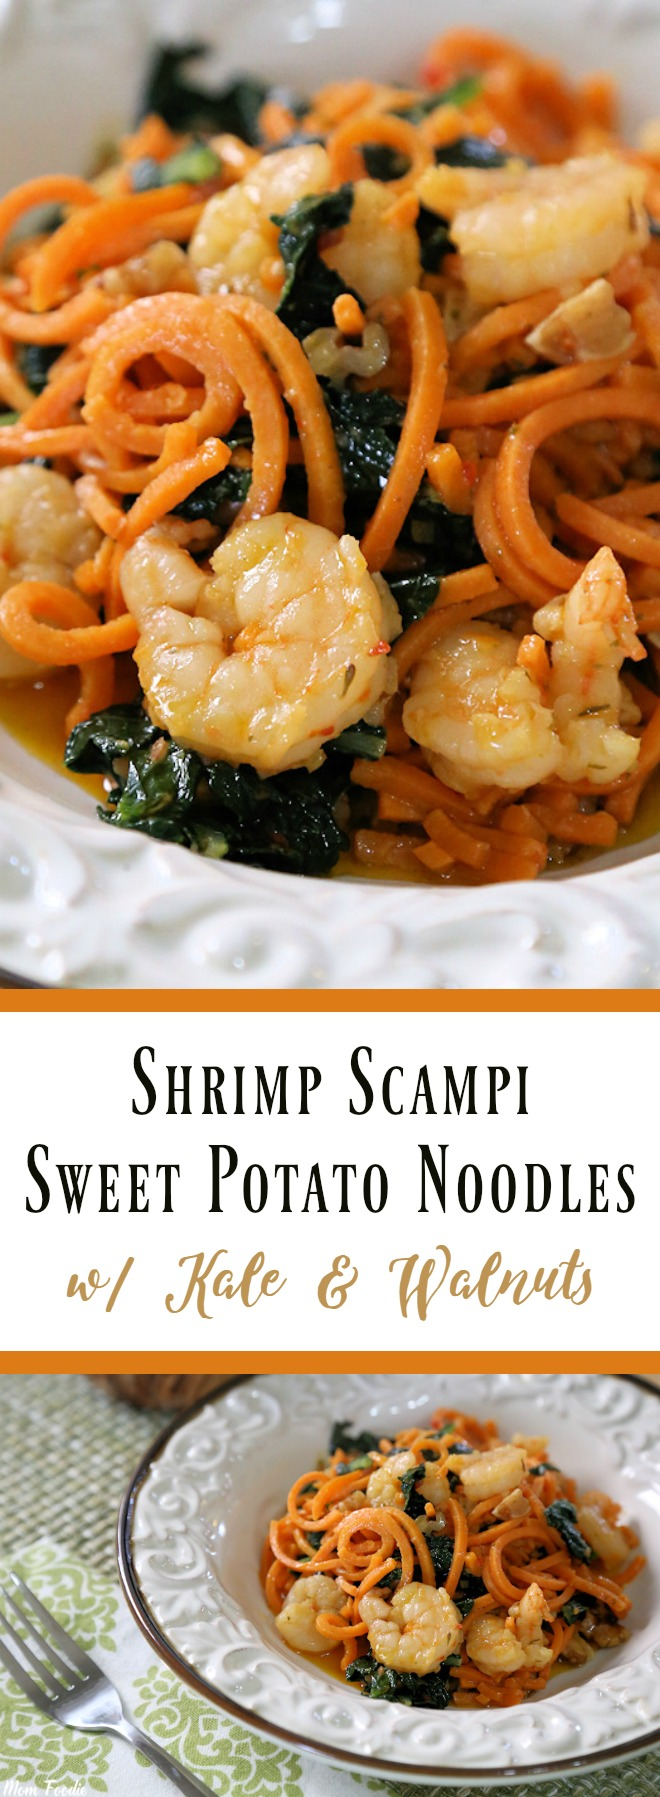 Shrimp Scampi Sweet Potato Noodles with Kale & Walnuts